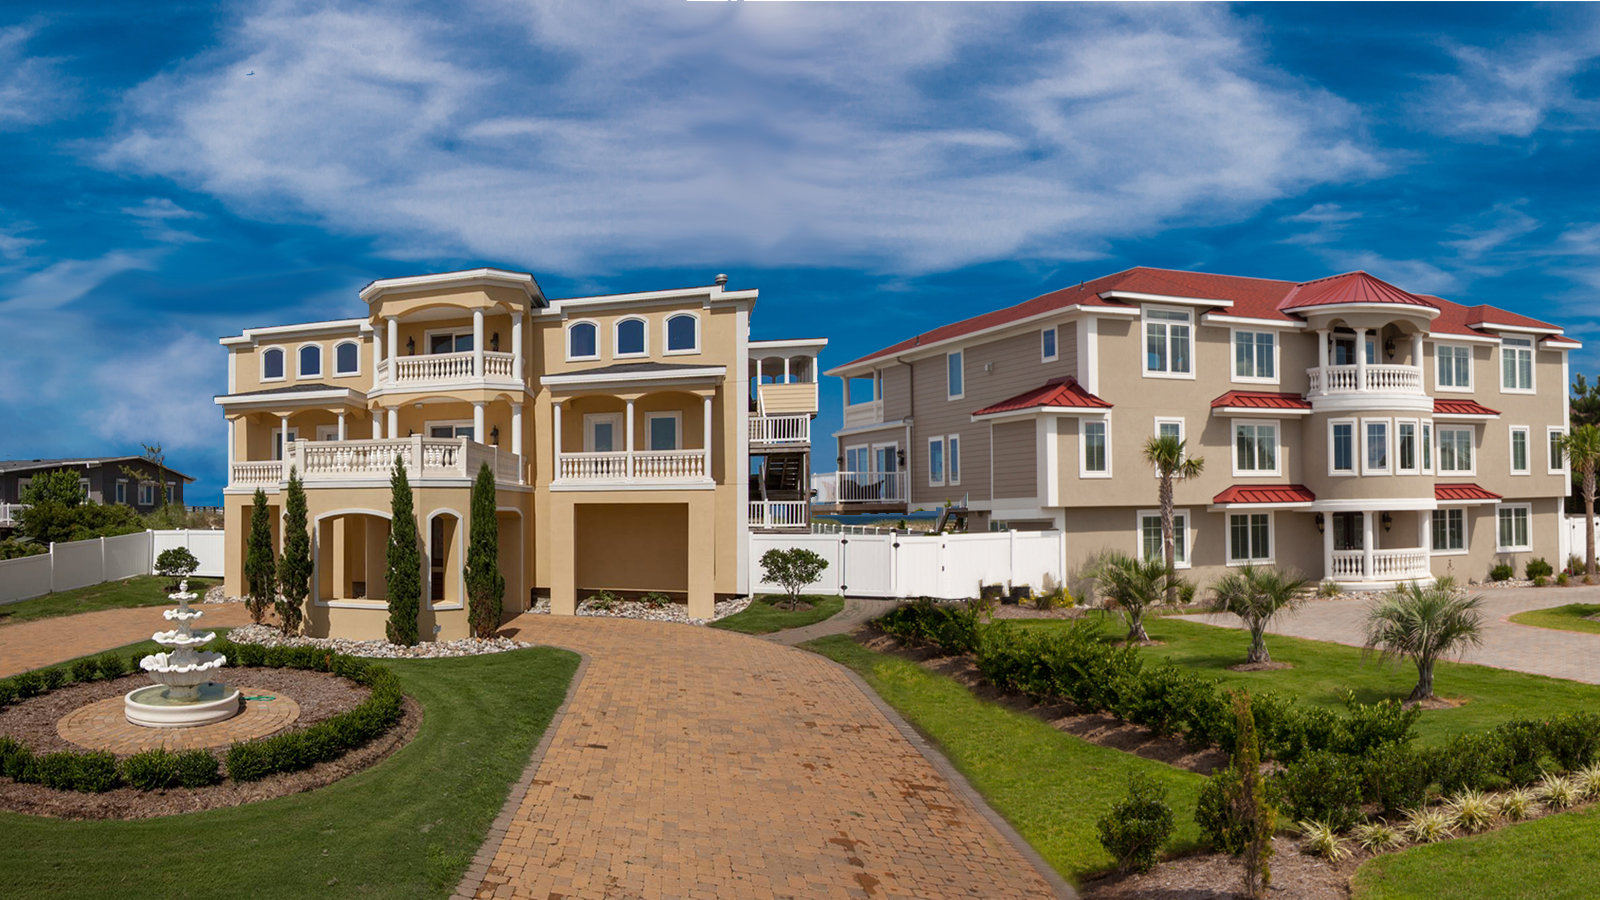 Other Residential for Sale at Palazzo Bella Vita 2304 Sandfiddler Road Virginia Beach, Virginia 23456 United States